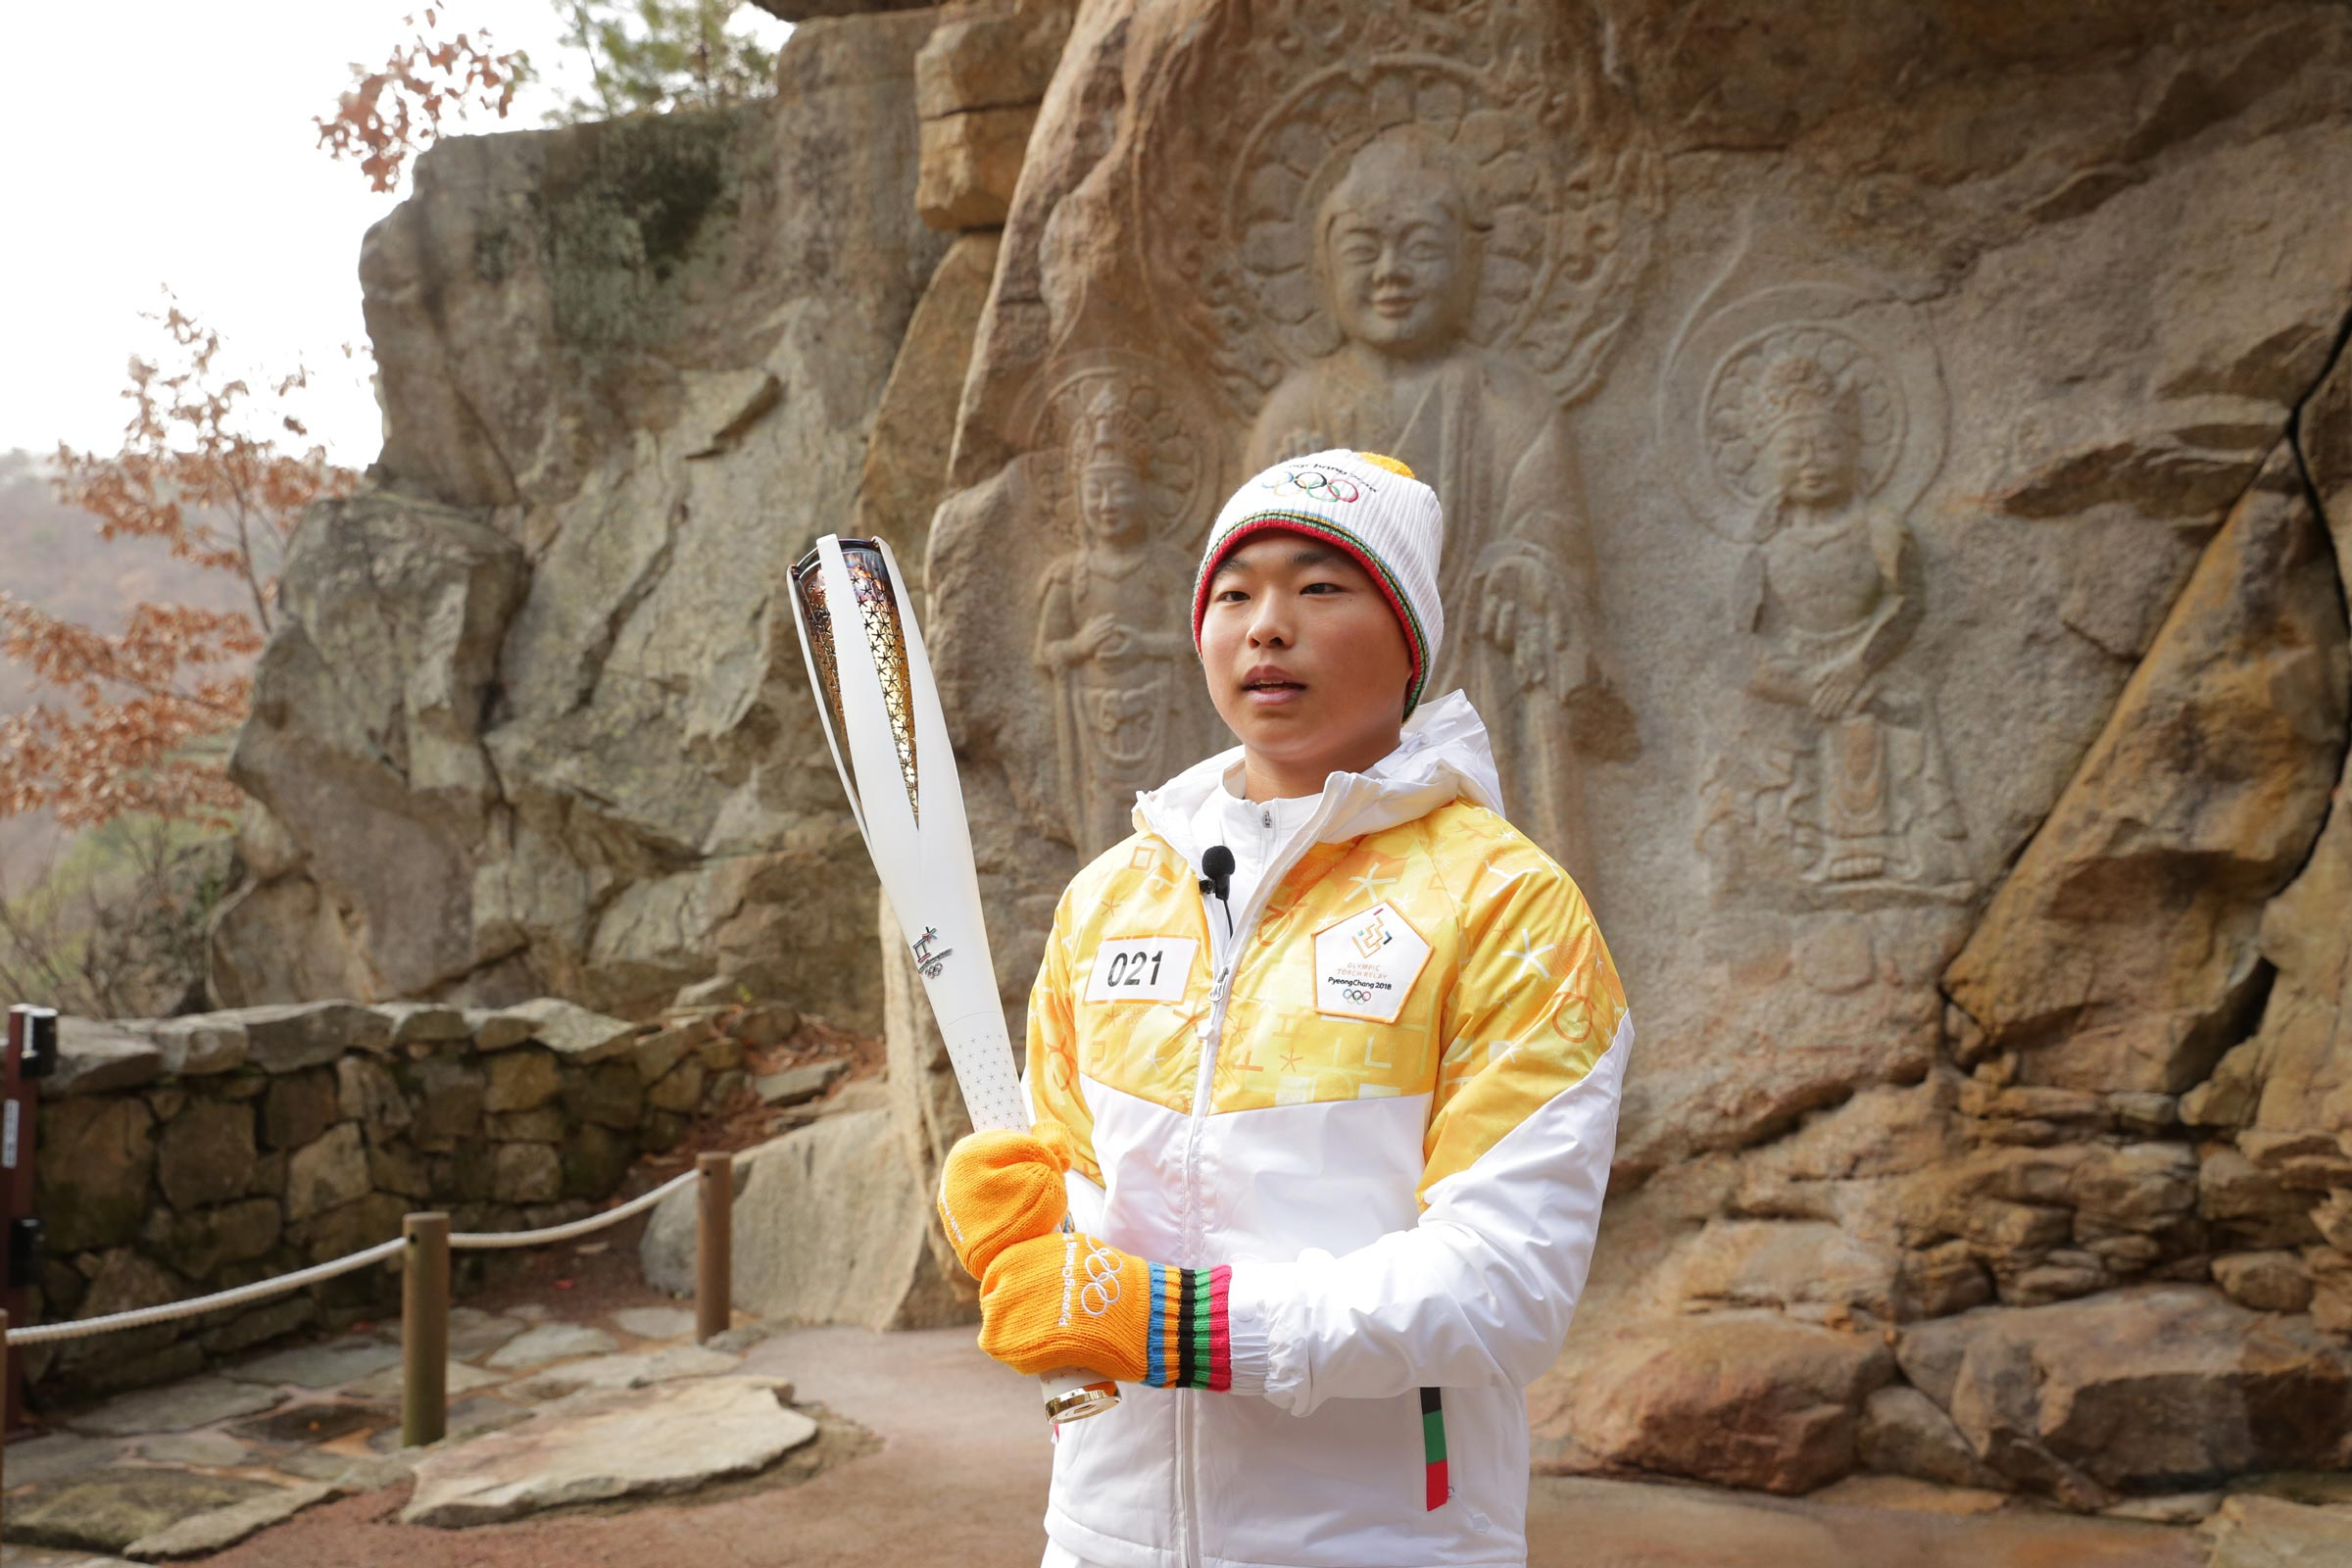 PyeongChang 2018 Olympic Torch Relay - Day 37